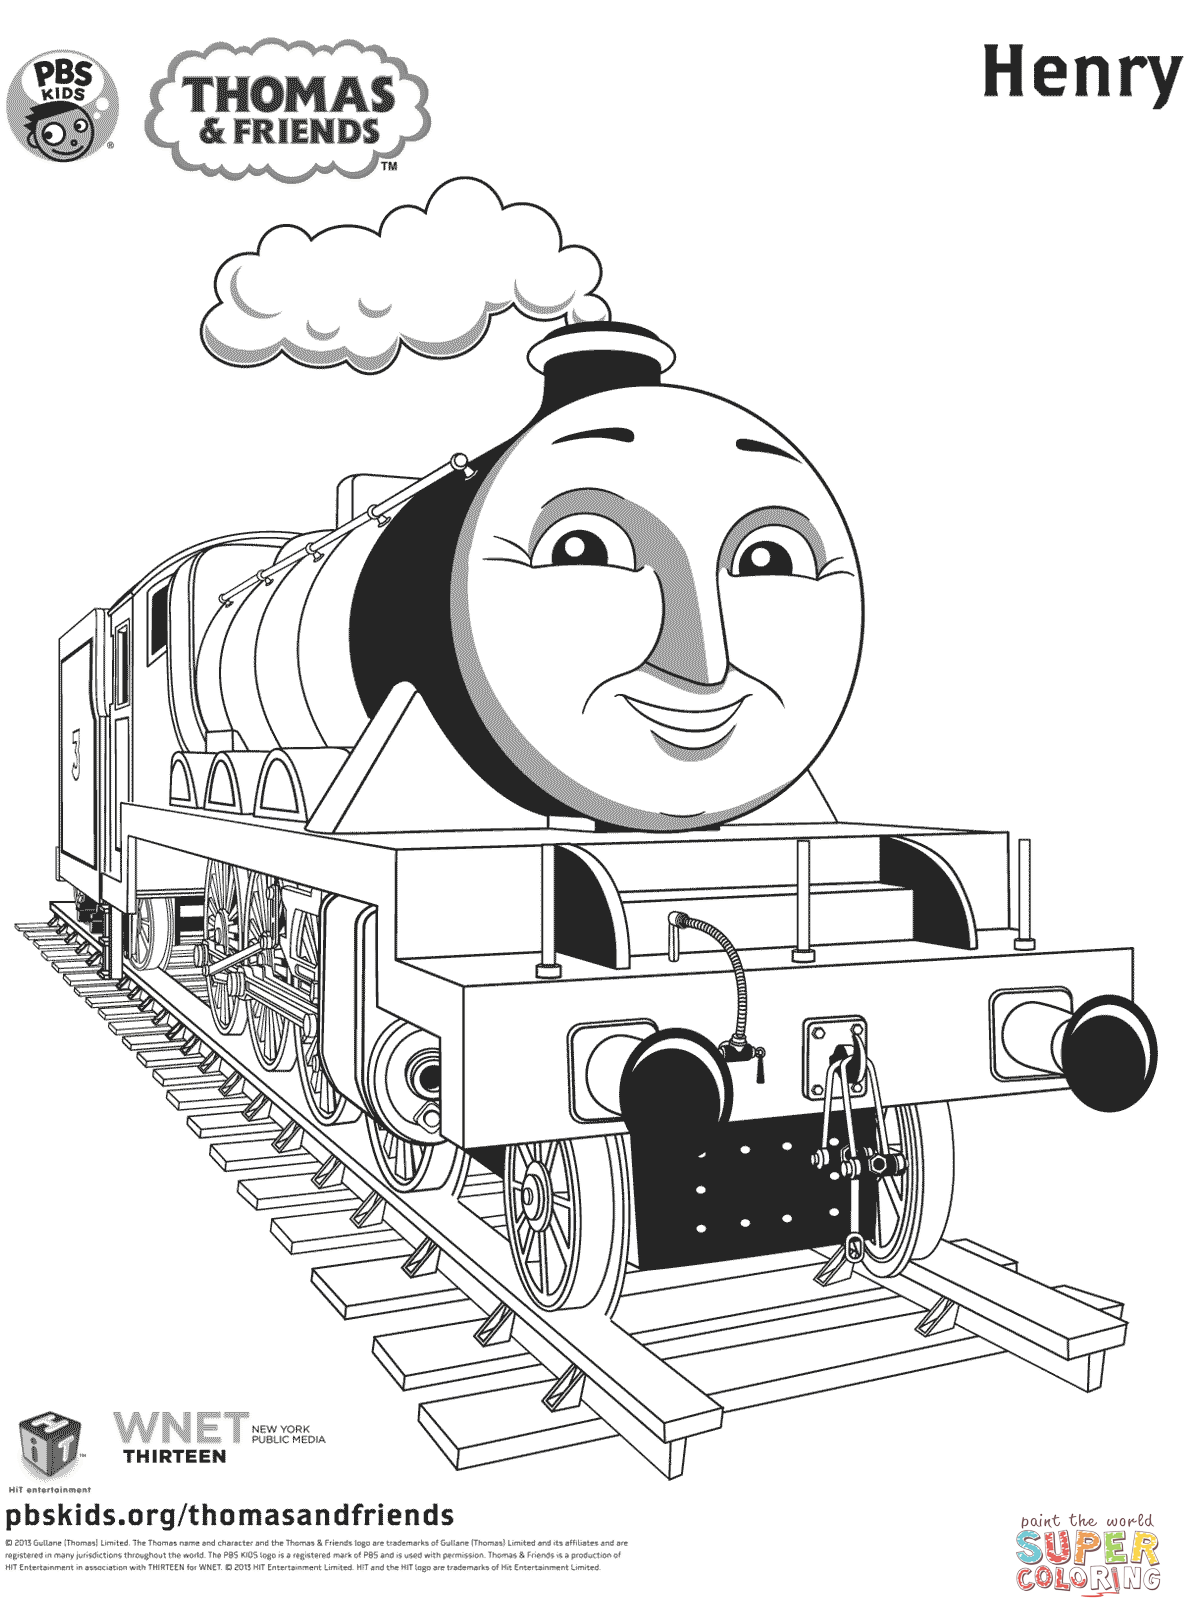 emily the tank engine coloring pages pin by bonnie lee on boys train coloring pages free emily engine pages the coloring tank